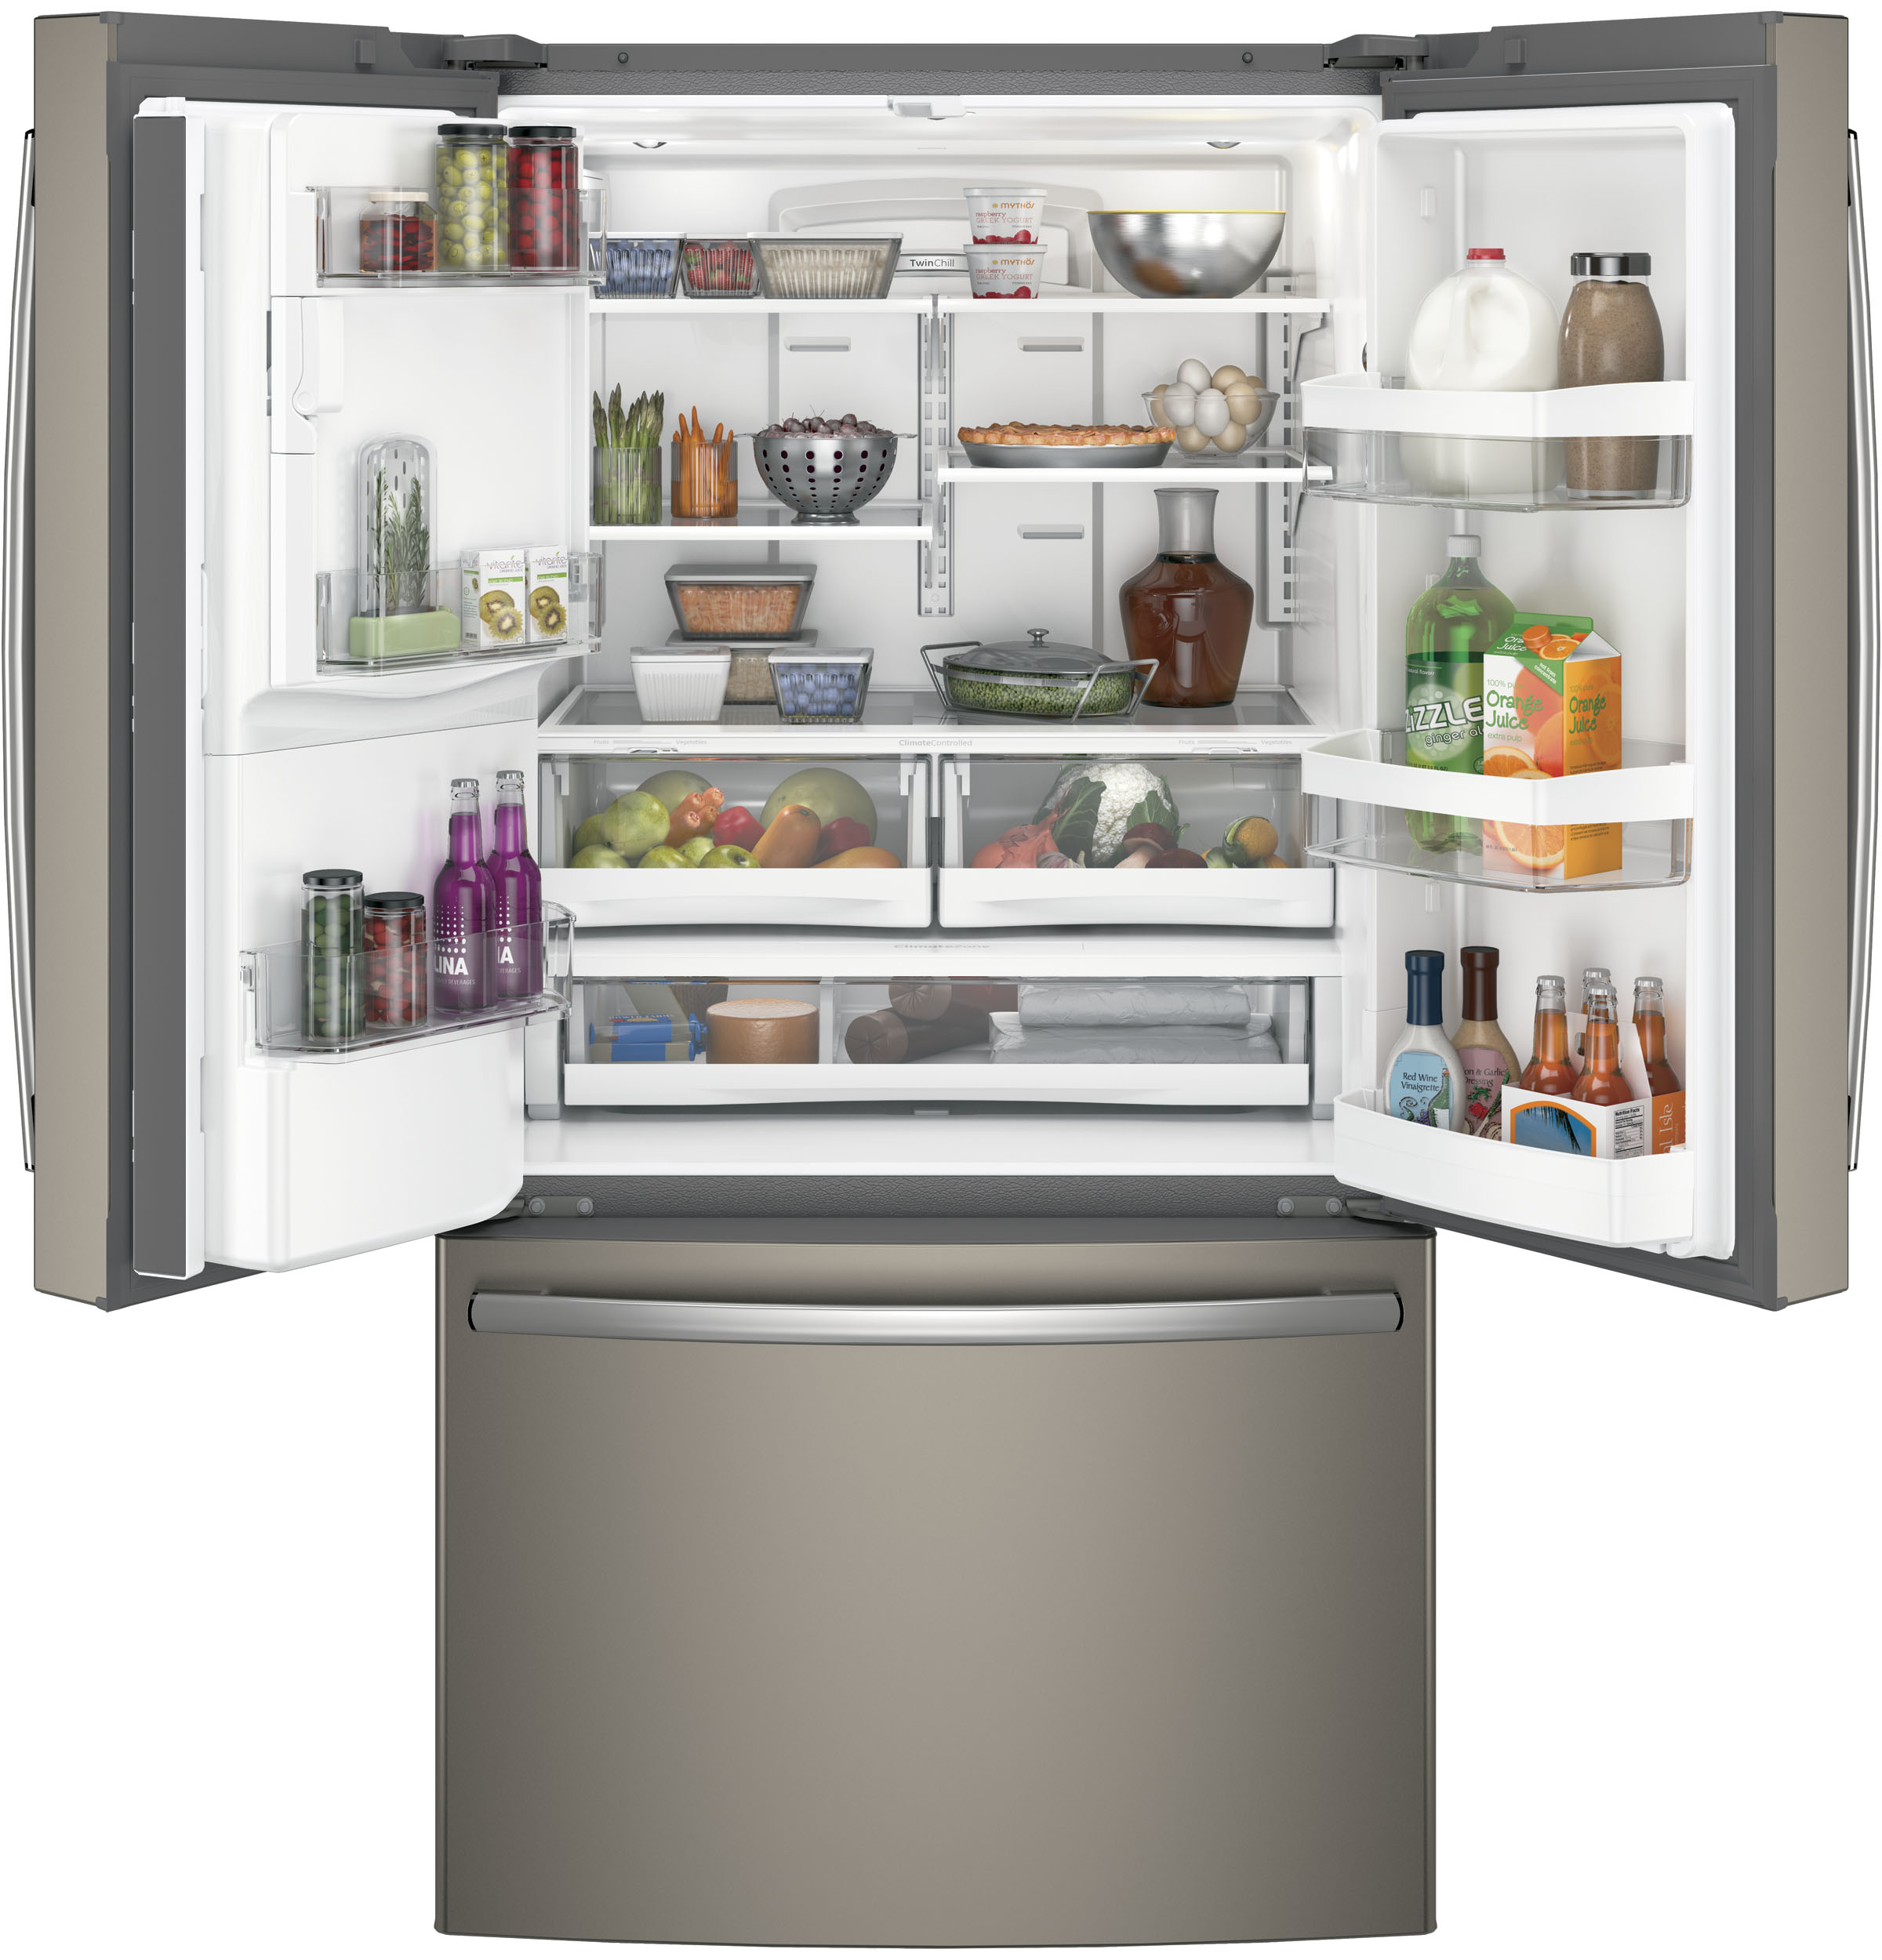 Model: 3GFE26GMKESWEB | GE GE® ENERGY STAR® 25.8 Cu. Ft. French-Door Refrigerator